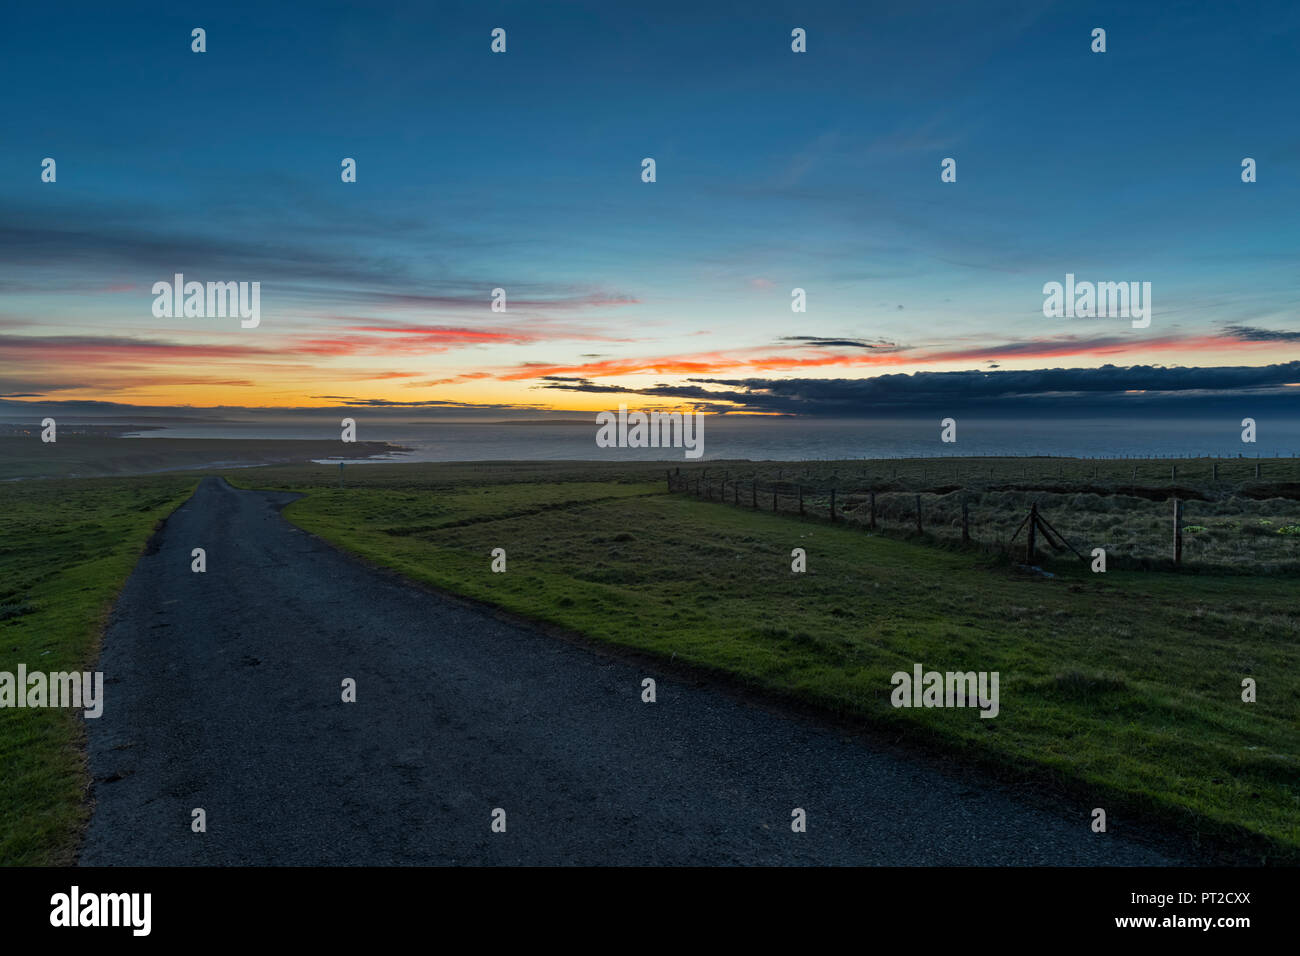 UK, Scotland, Caithness, Duncansby Head, rural road at sunset - Stock Image